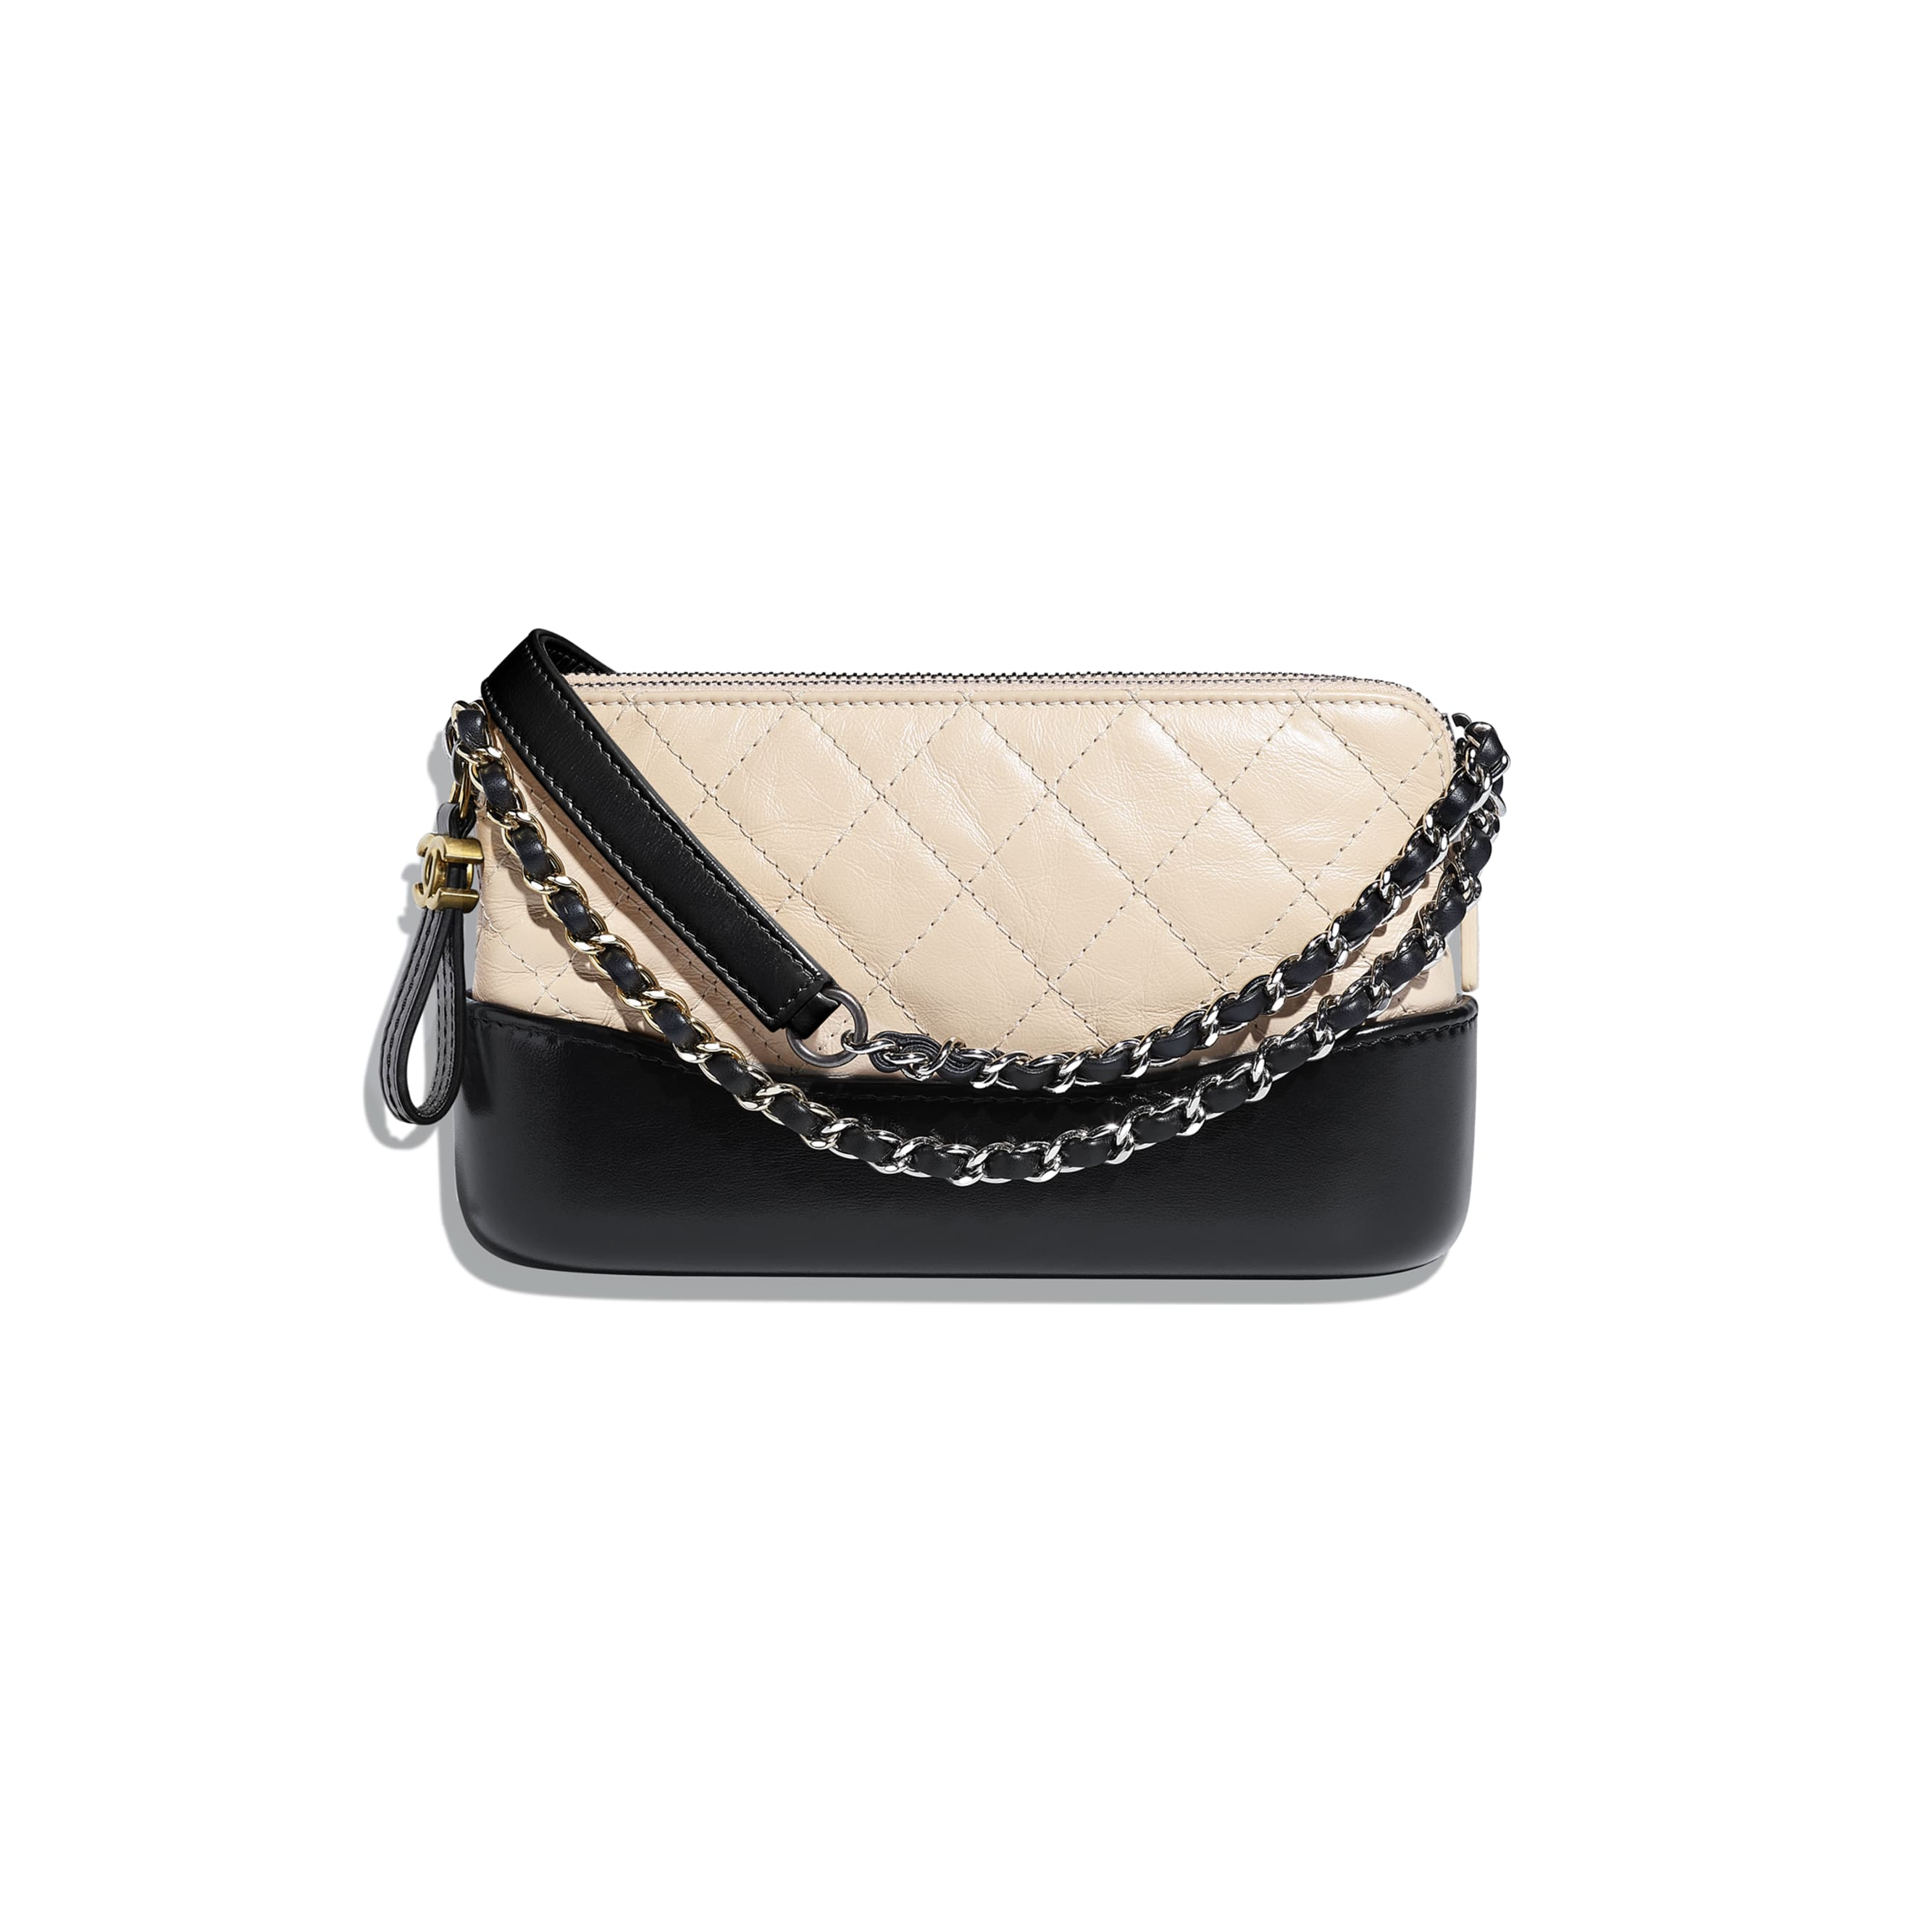 Clutch With Chain - Beige & Black - Aged Calfskin, Smooth Calfskin, Gold-Tone, Silver-Tone & Ruthenium-Finish Metal - CHANEL - Other view - see standard sized version